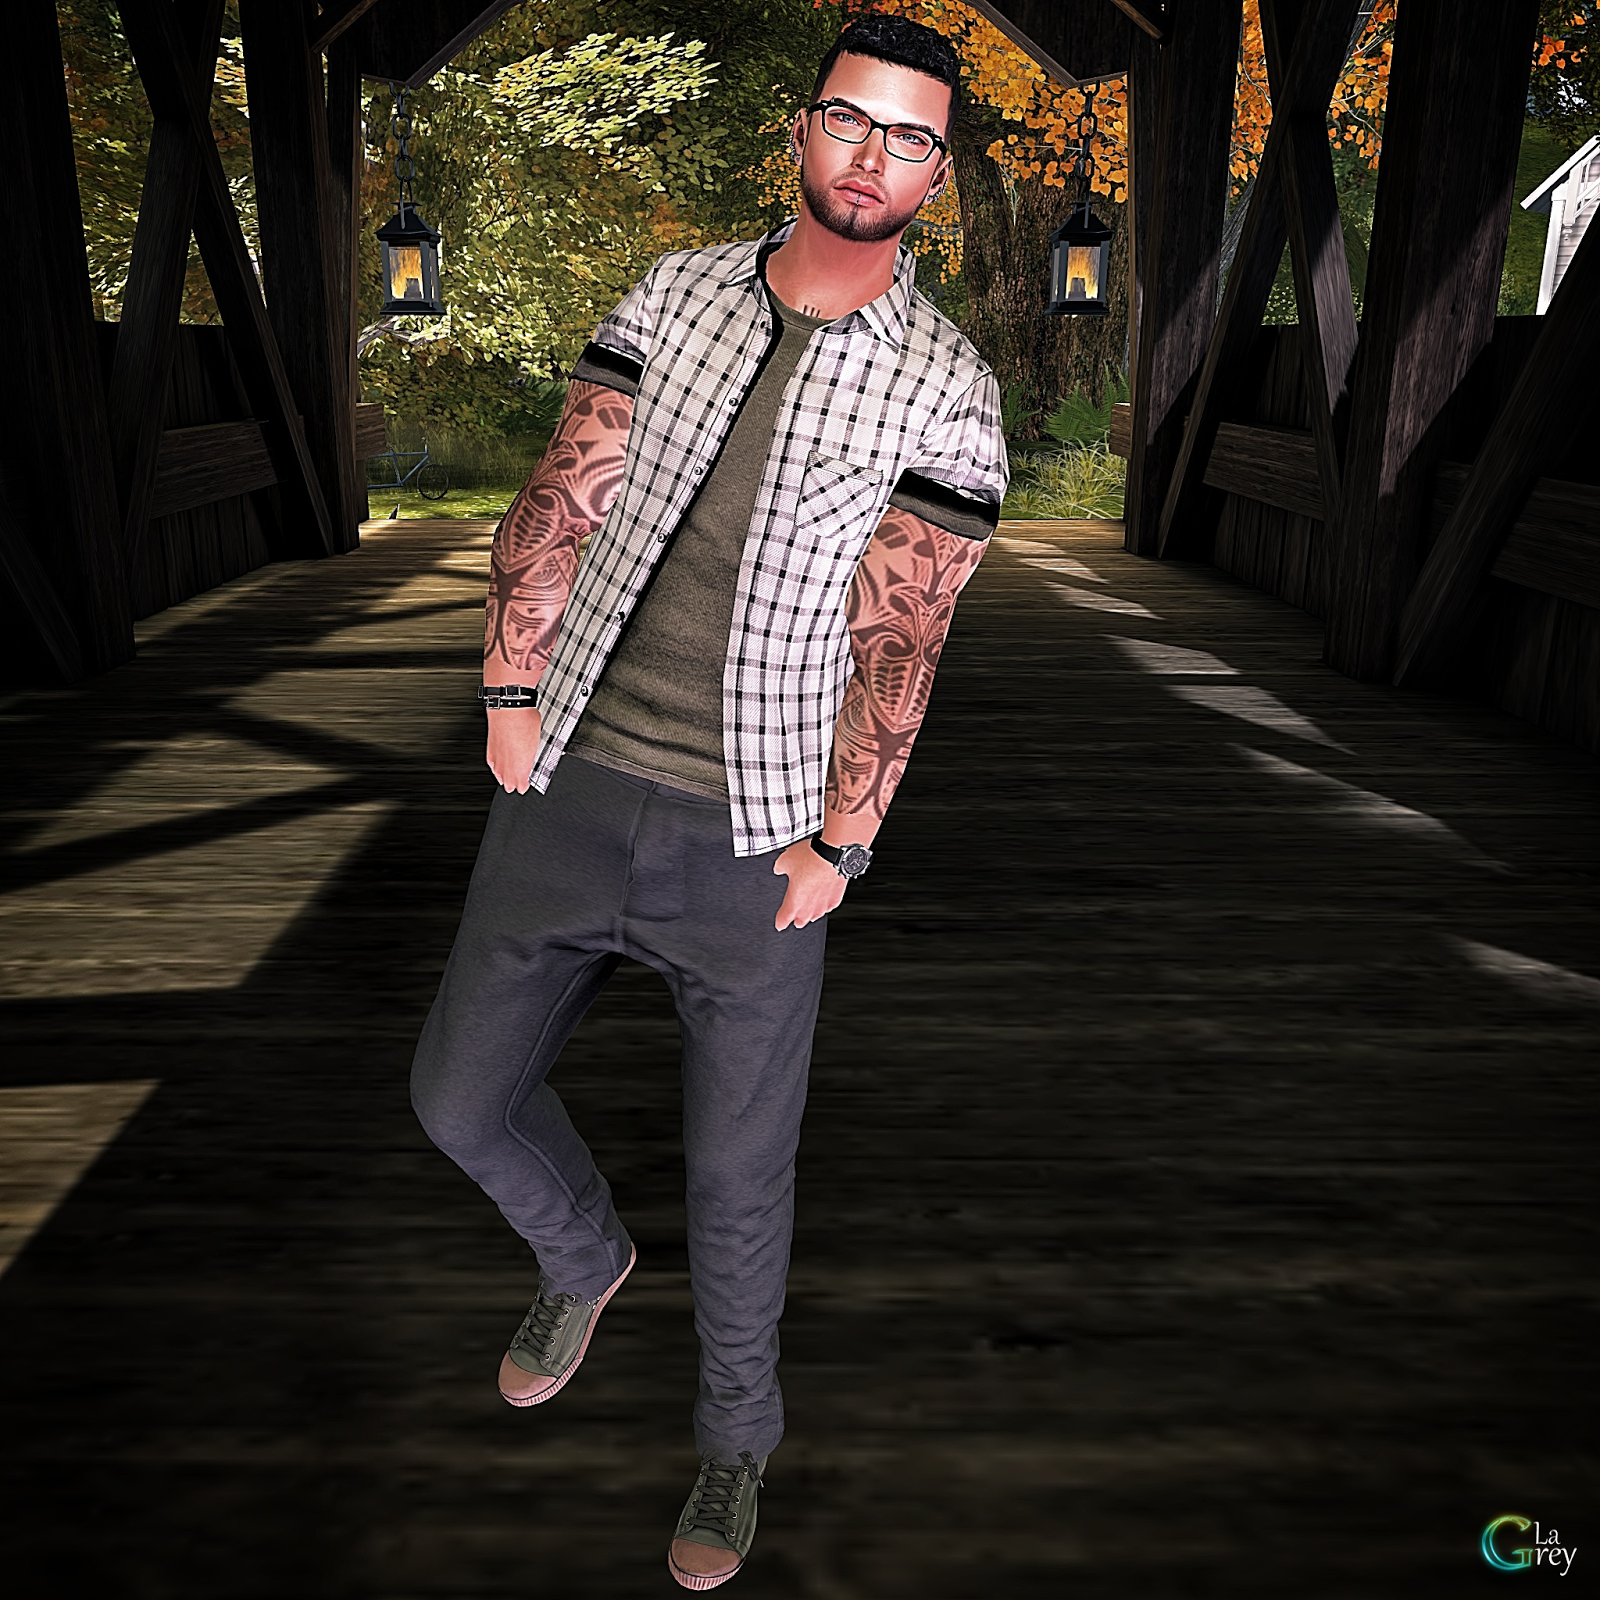 https://www.flickr.com/photos/real_appearance_in_sl/15018411208/